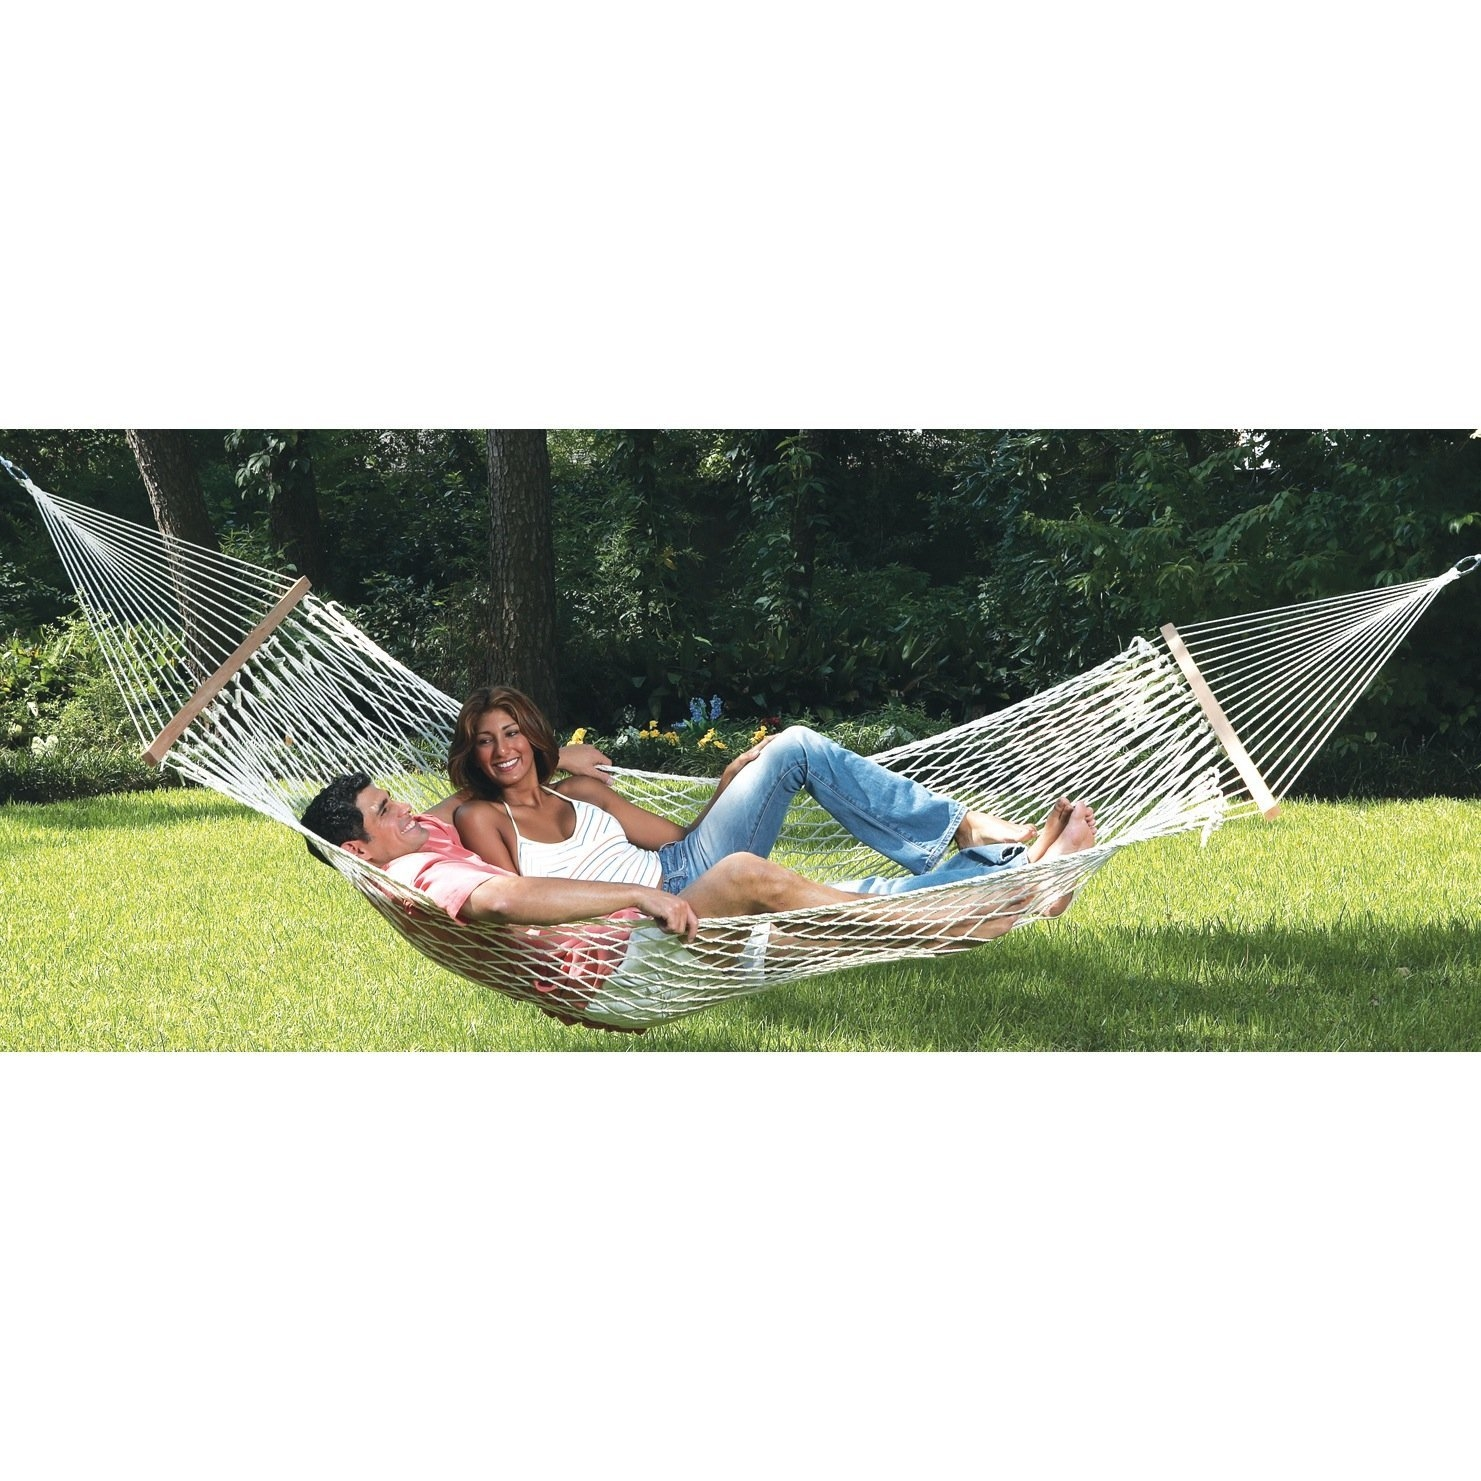 Comfortable Large Cotton Rope Hammock with Carry Bag, TSH4141 :  Large enough for two, this Comfortable Large Cotton Rope Hammock with Carry Bag bed made of cool, comfortable, large-diameter cotton ropes. French-braided edges contribute strength. Weight limit is 500 pounds. Other features include hardwood spreader bars and sturdy, welded suspension rings. Overall, the hammock measures 120 inches x 57 inches. It comes with a heavy-duty carry/storage bag with straps, full-length zipper, and information panel.